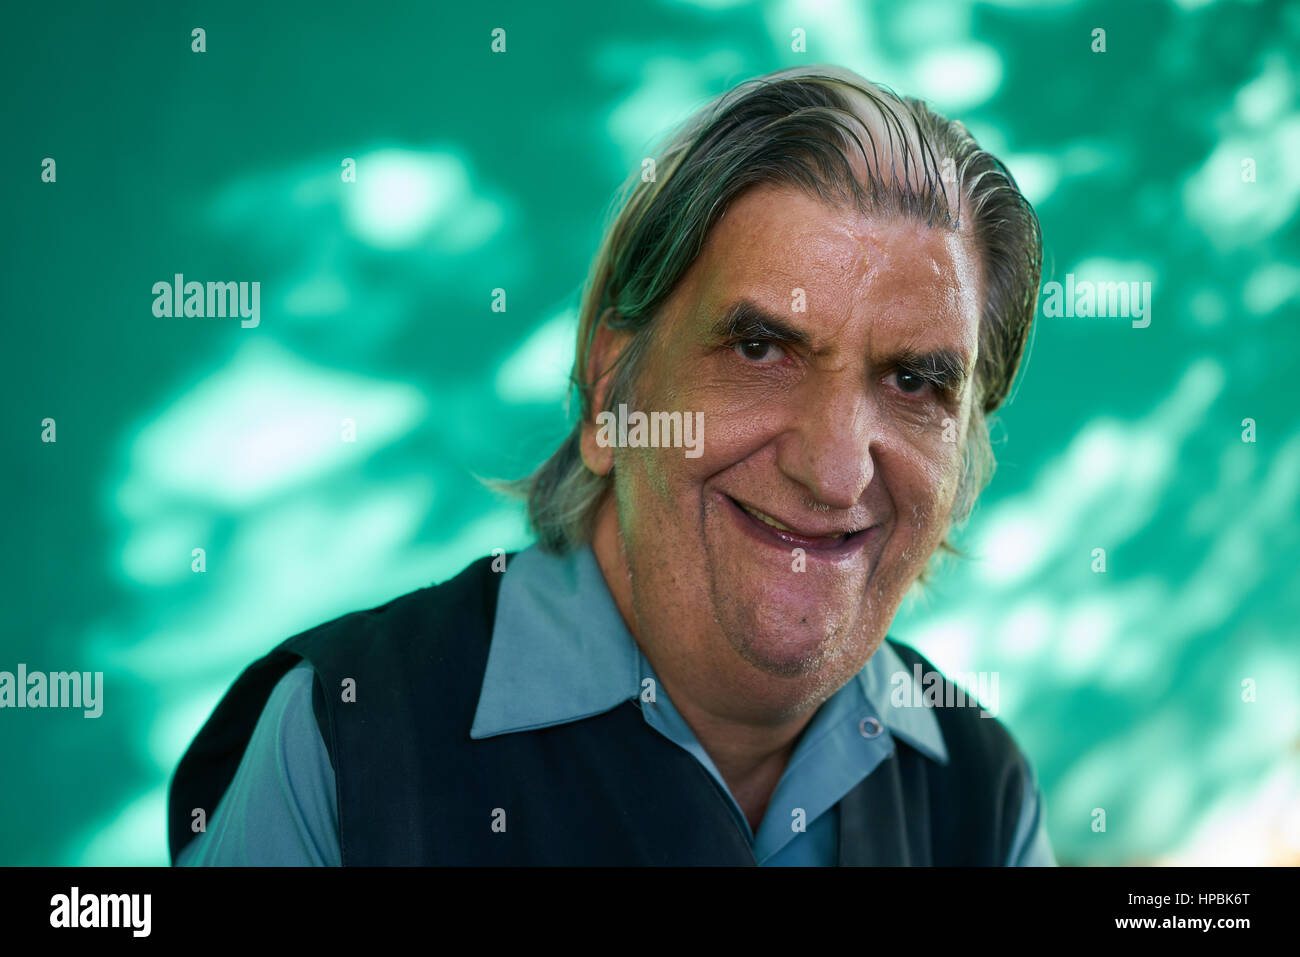 Old hispanic real people from Cuba with feelings and emotions, portrait of funny senior caucasian man smiling, laughing - Stock Image